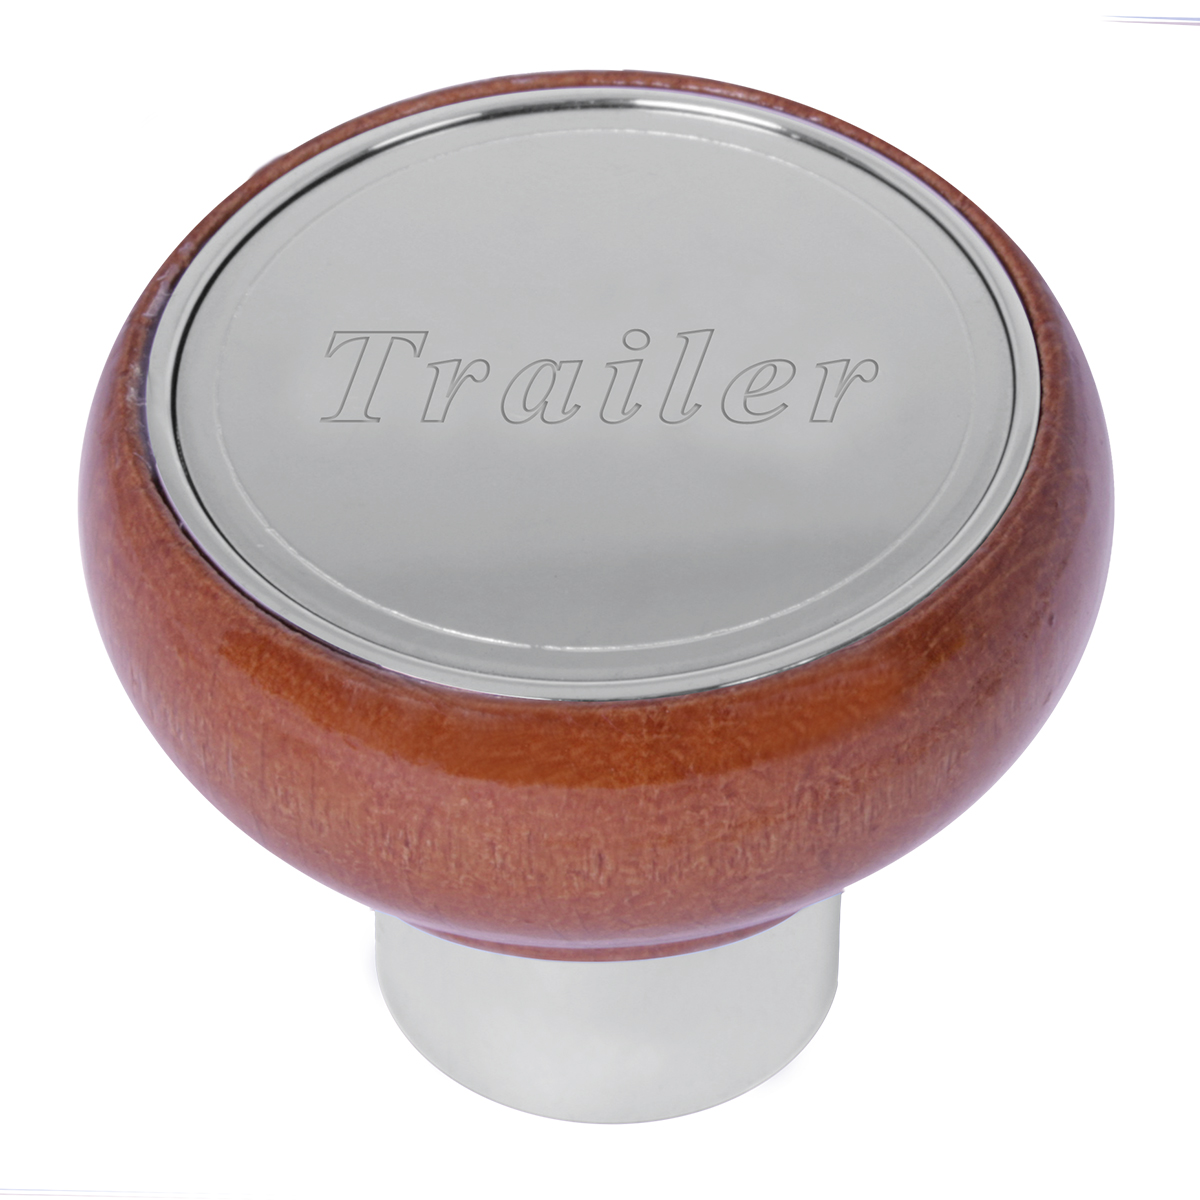 96022 Trailer Screw-In Wood Air Valve Control Knob